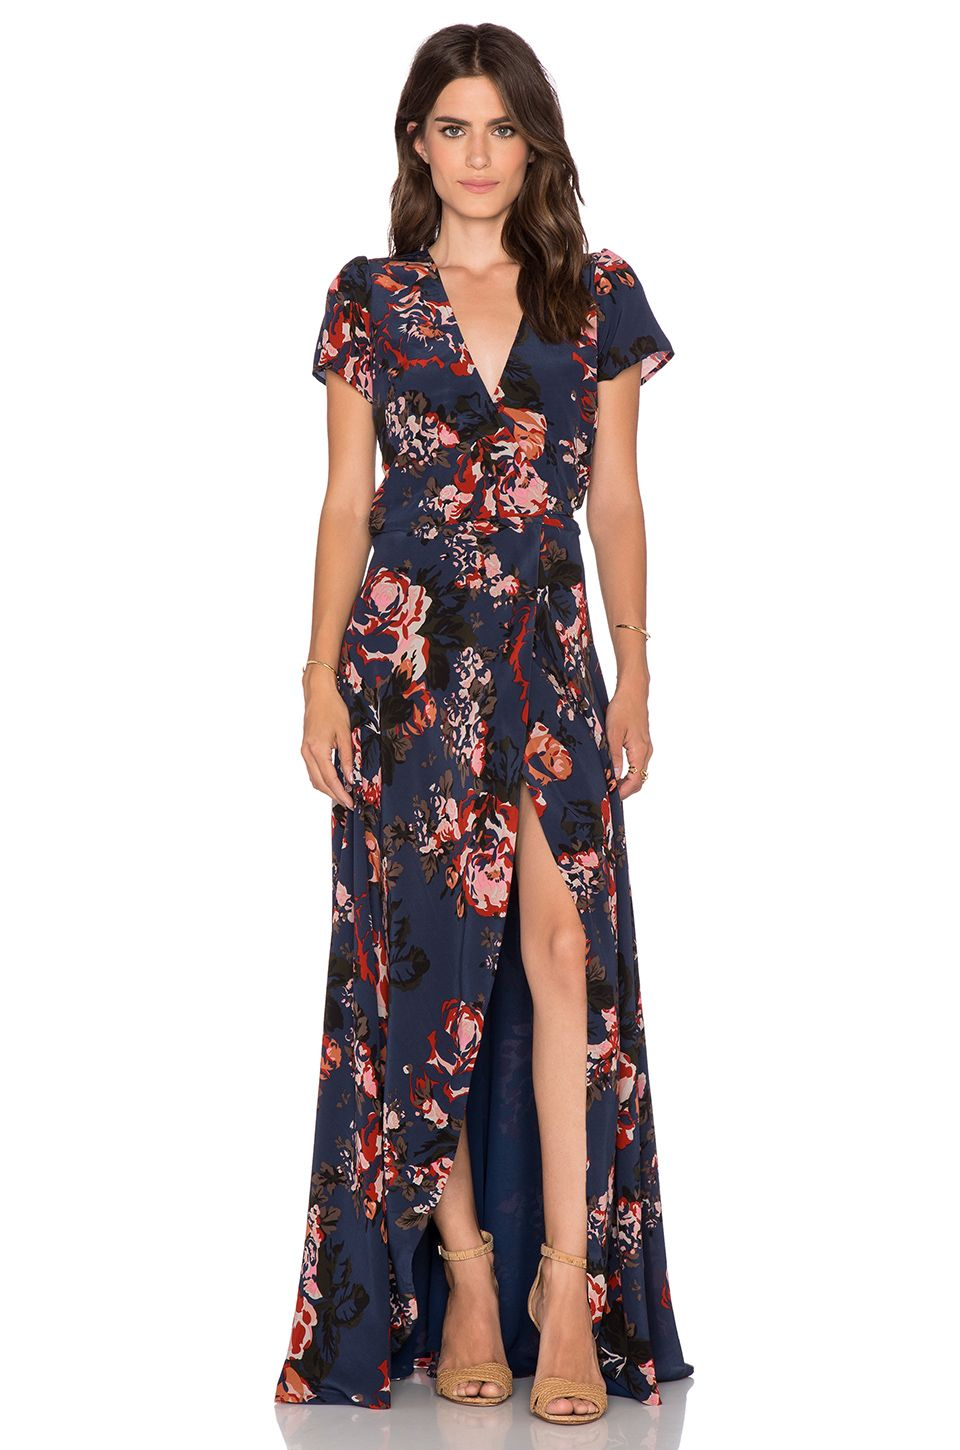 Helena Quinn Claire Maxi Wrap Dress In Navy Rose Print